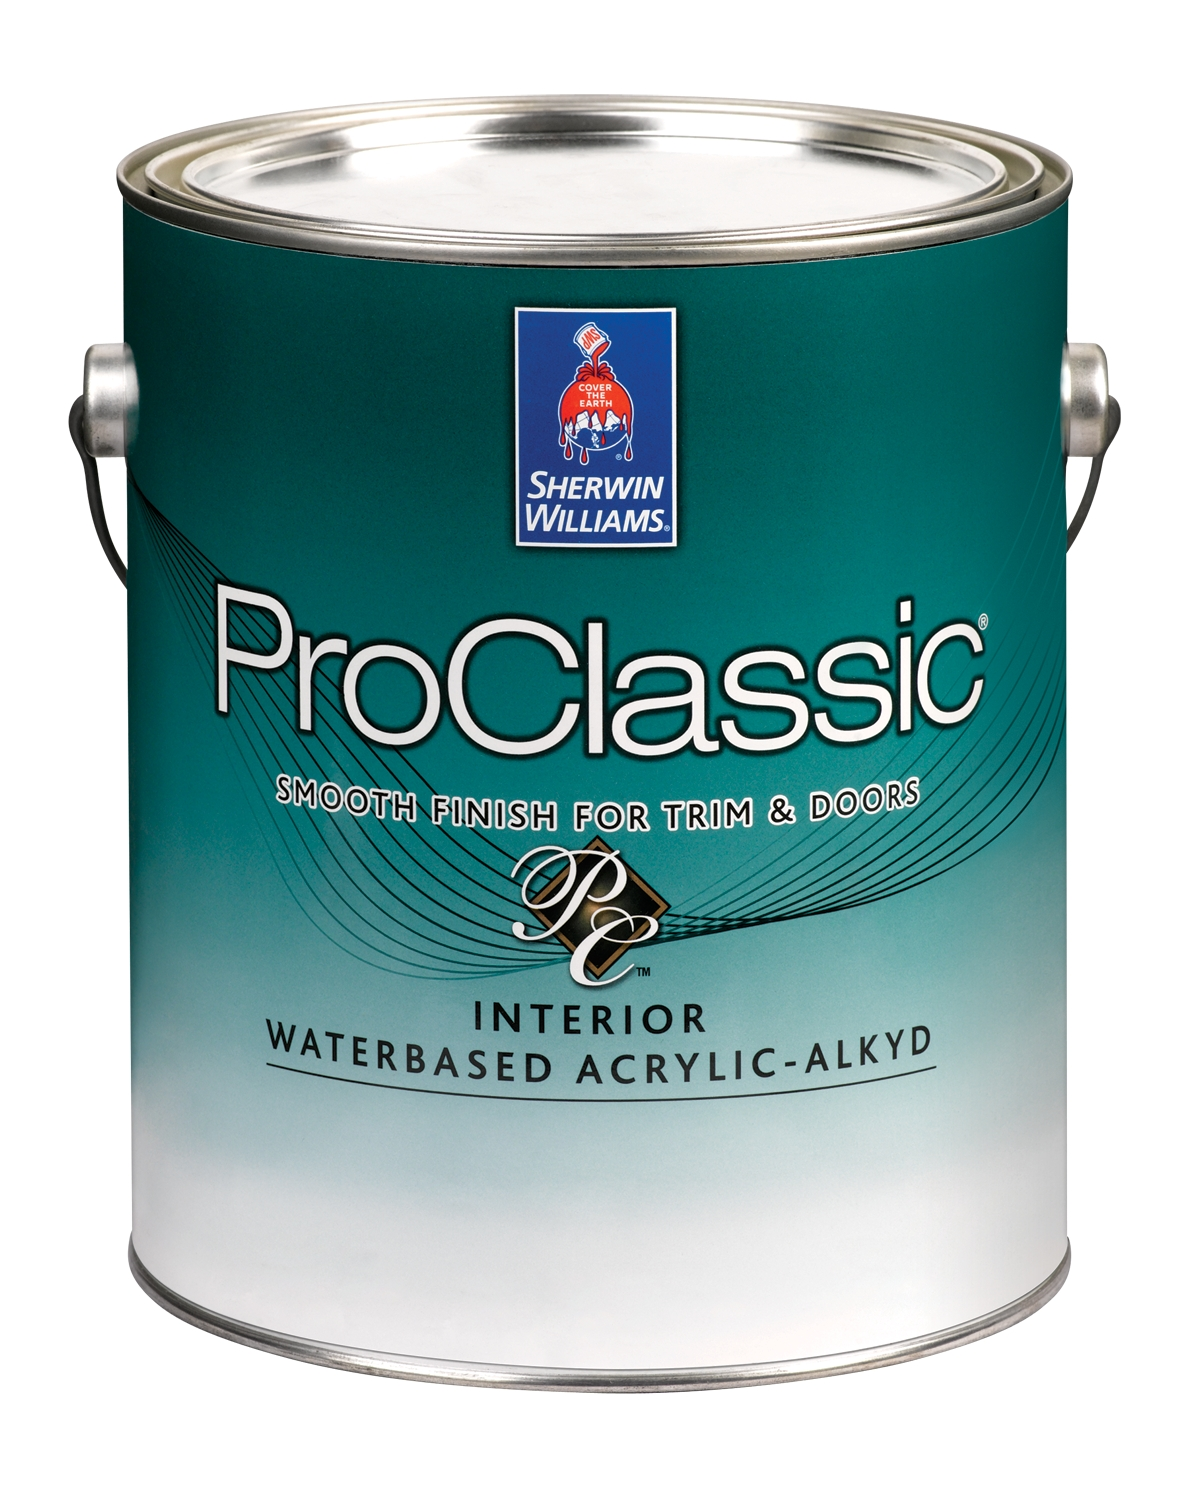 ProClassic Interior Waterbased Acrylic-Alkyd